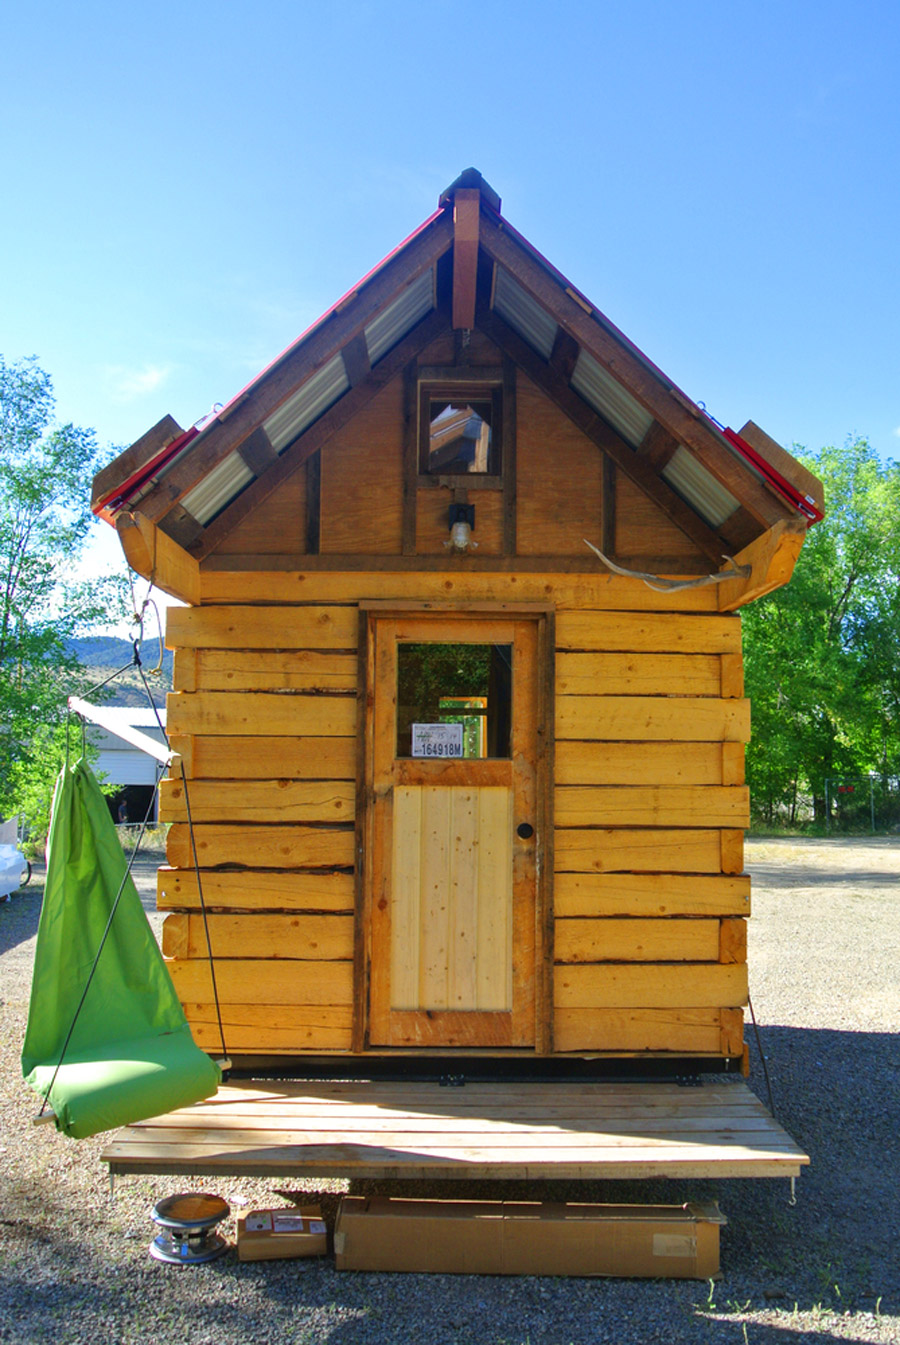 stanley-tiny-house-rocky-mountain-tiny-houses-1